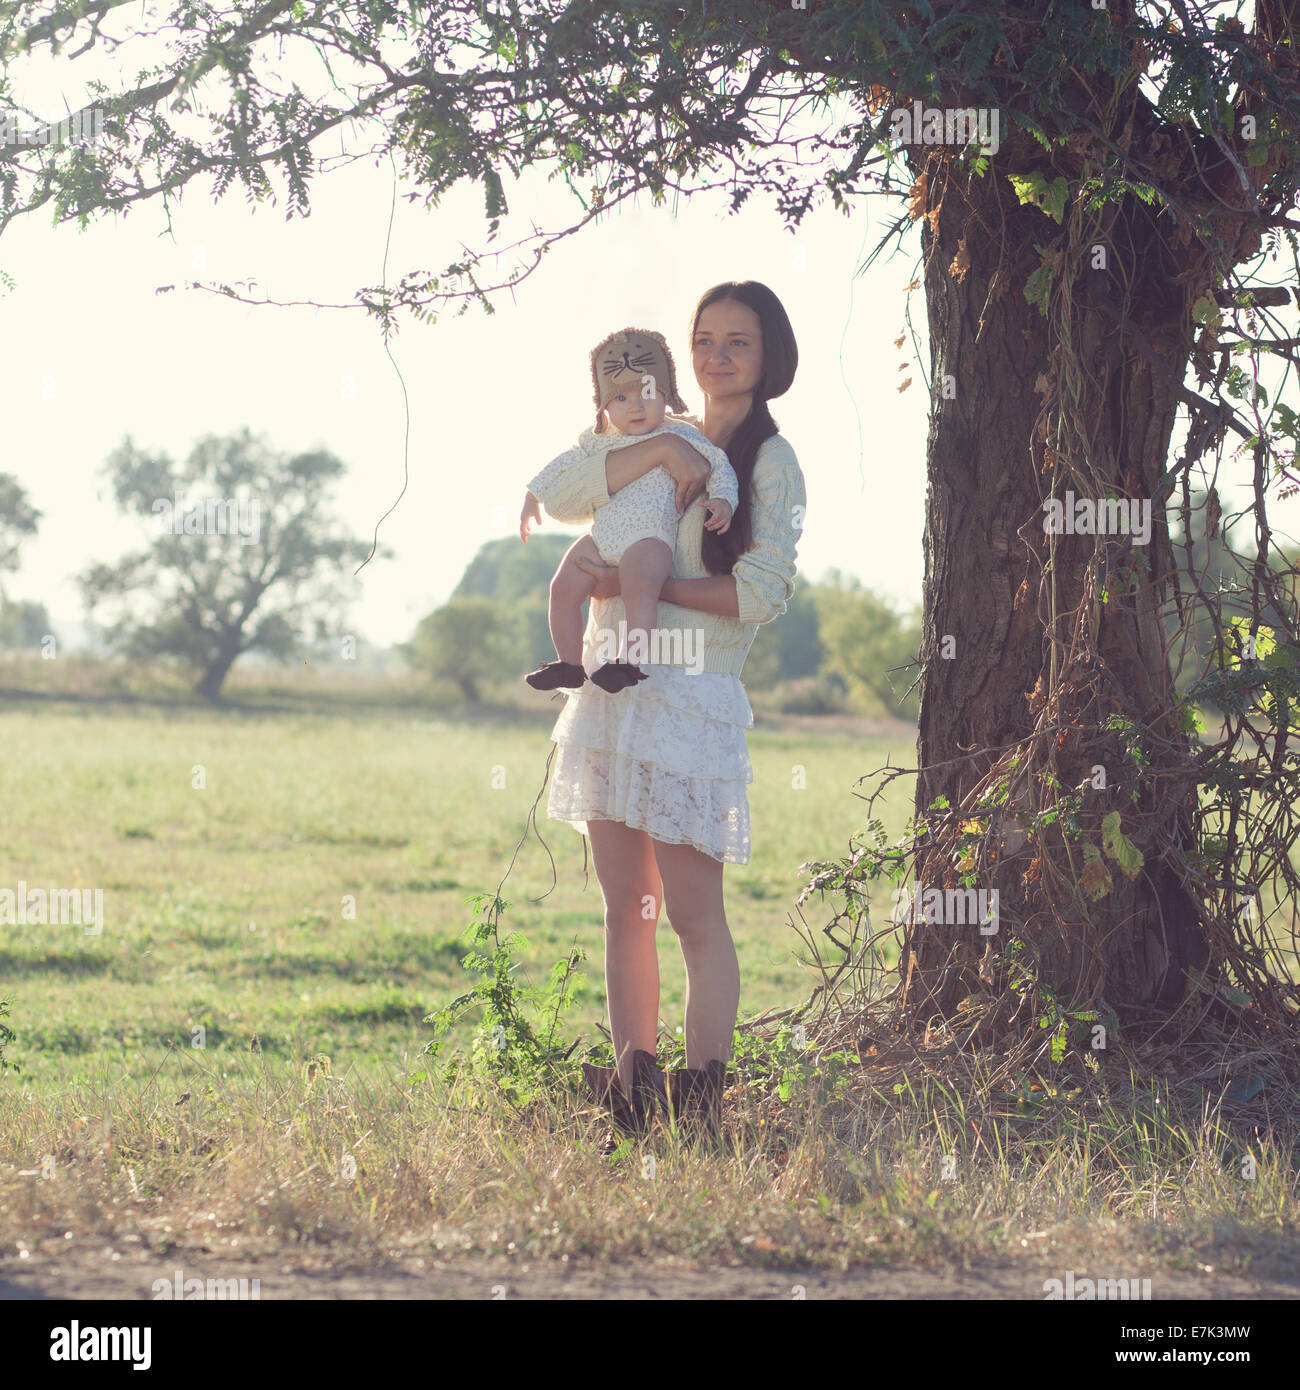 baby and mother strolling on suburban landscape - Stock Image